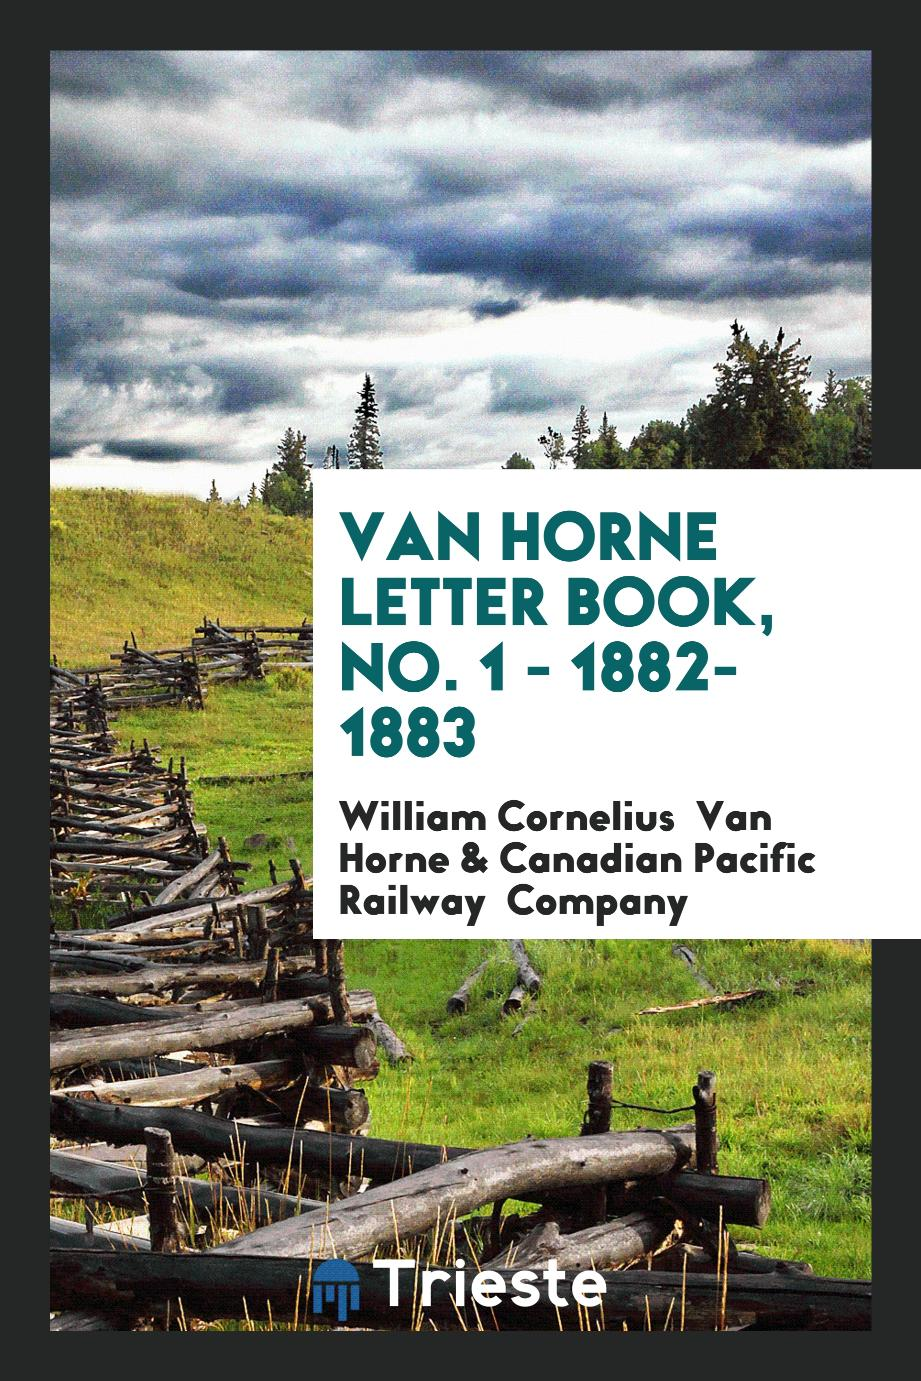 Van Horne Letter Book, No. 1 - 1882-1883